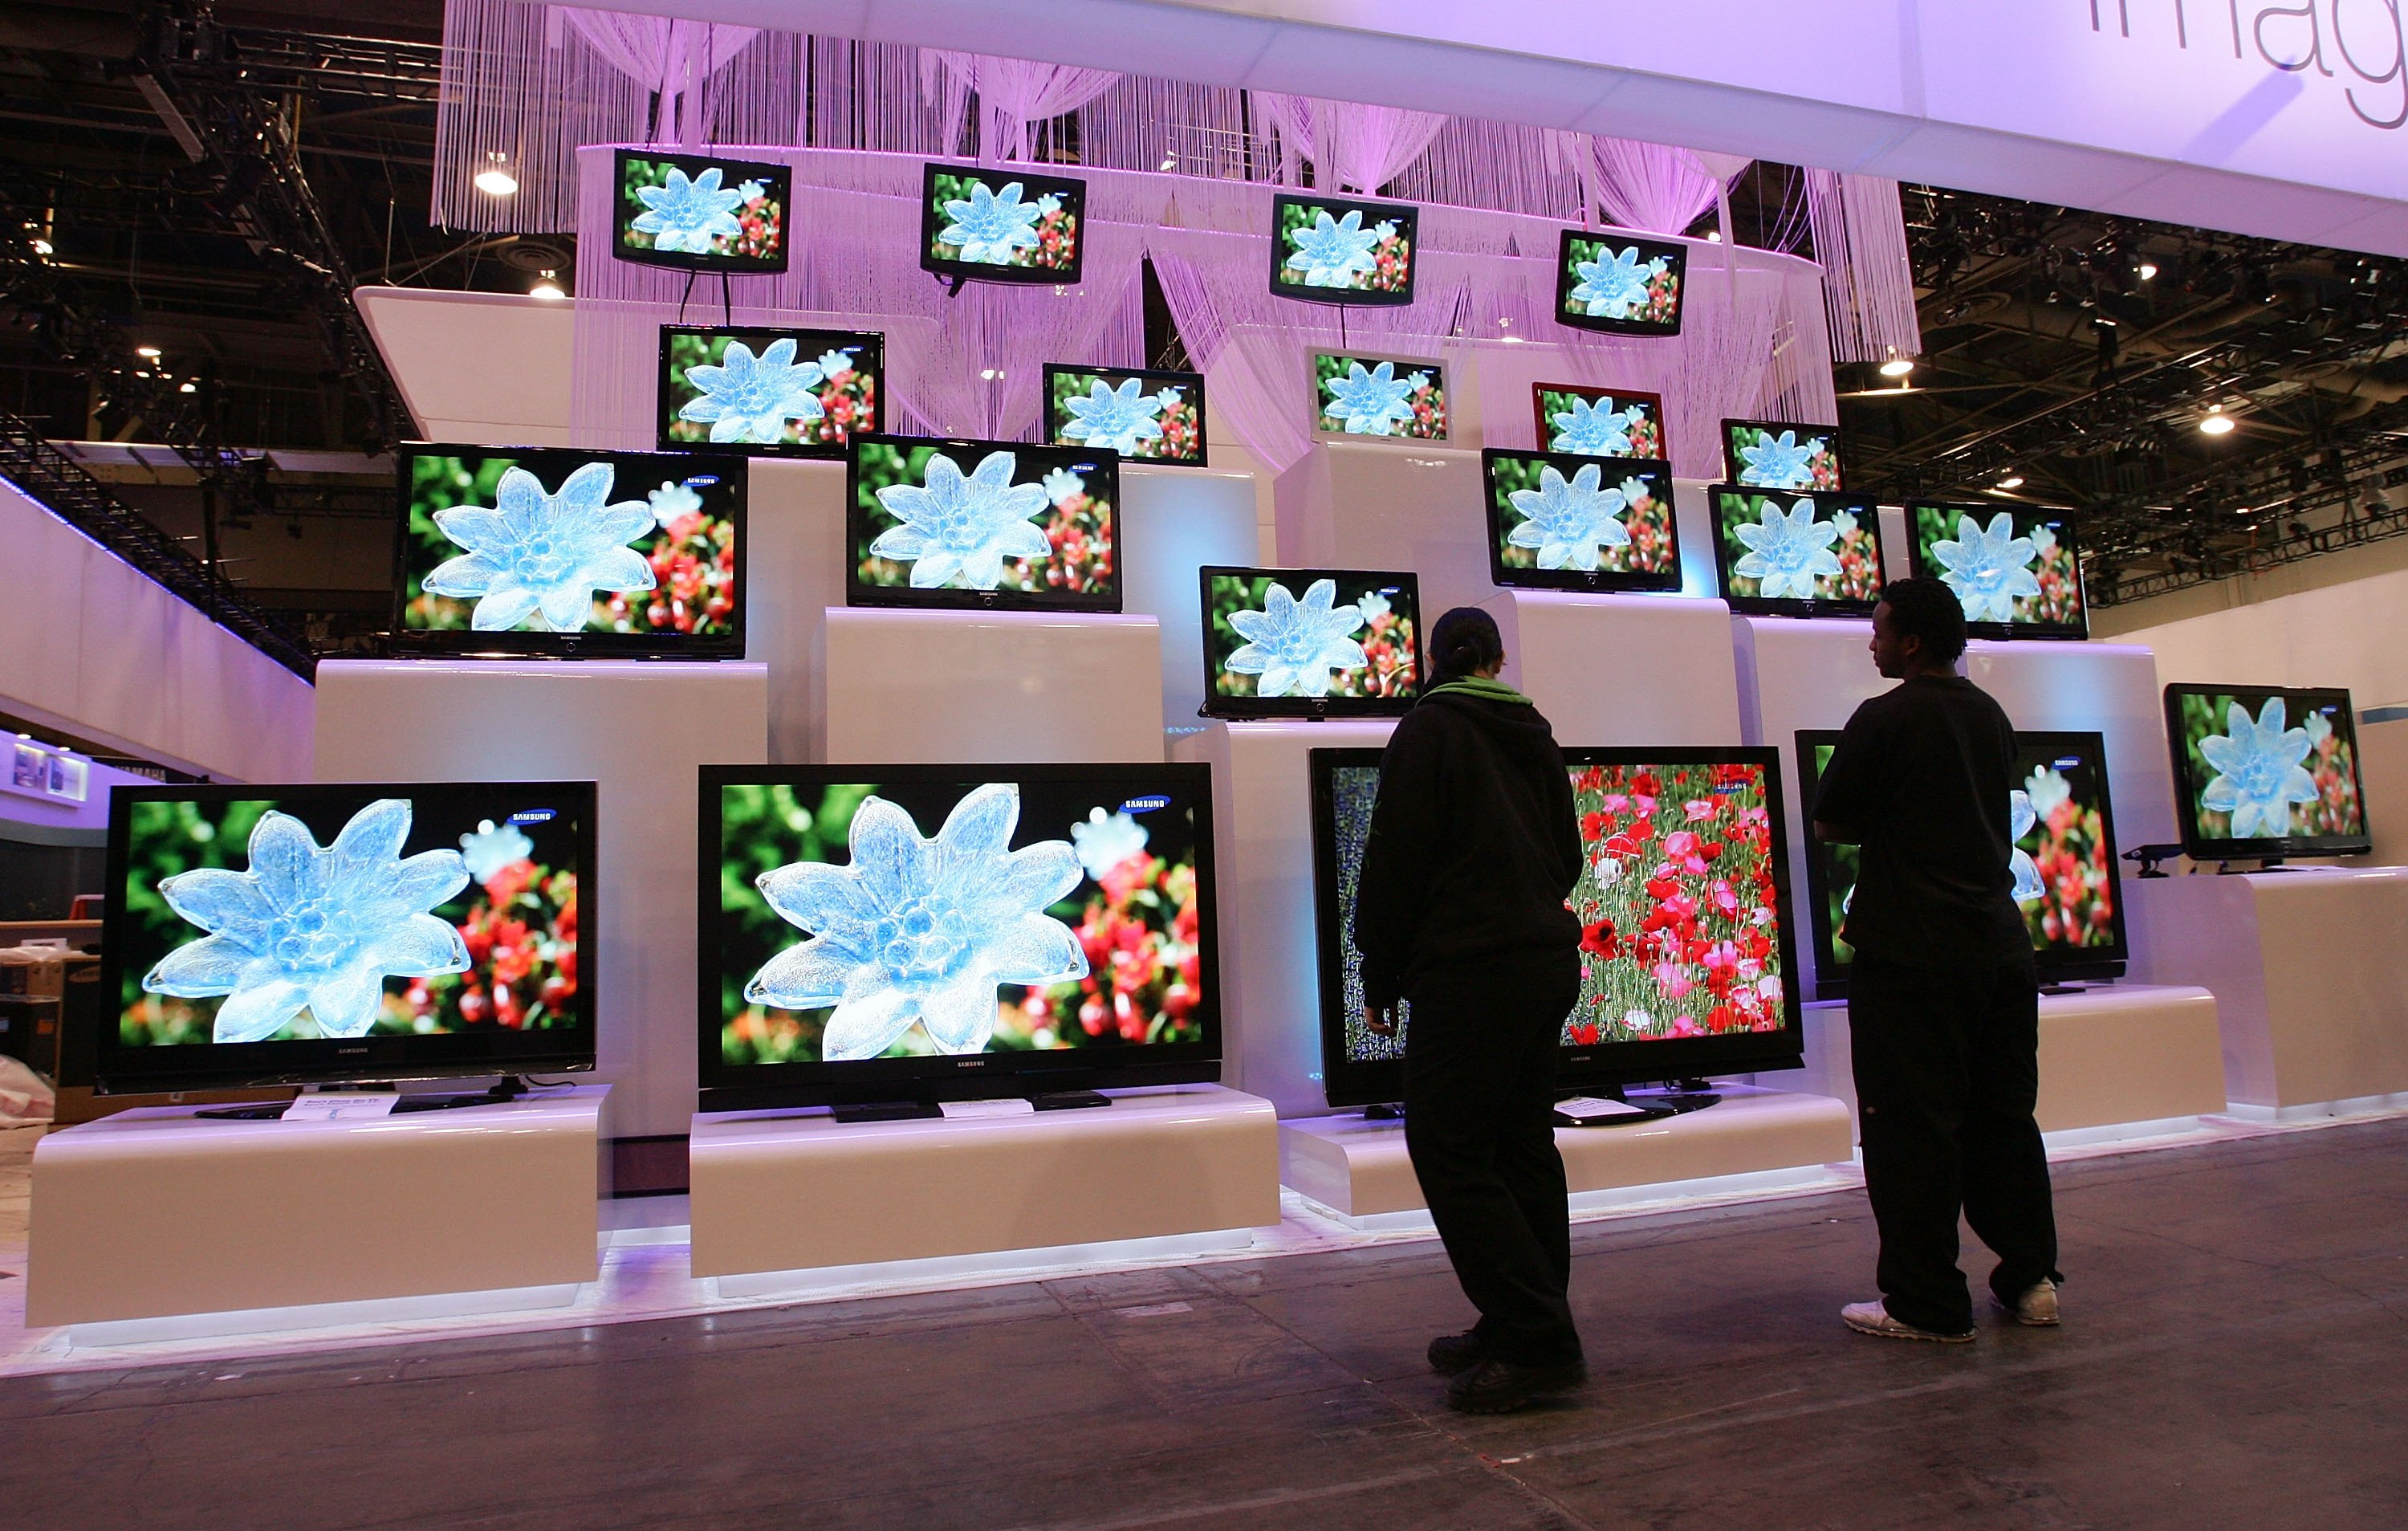 Workers look at a display of televisions by Samsung at the Las Vegas Convention Center as preparations continue for the opening of the 2007 International Consumer Electronics Show January 5, 2007 in Las Vegas, Nevada.